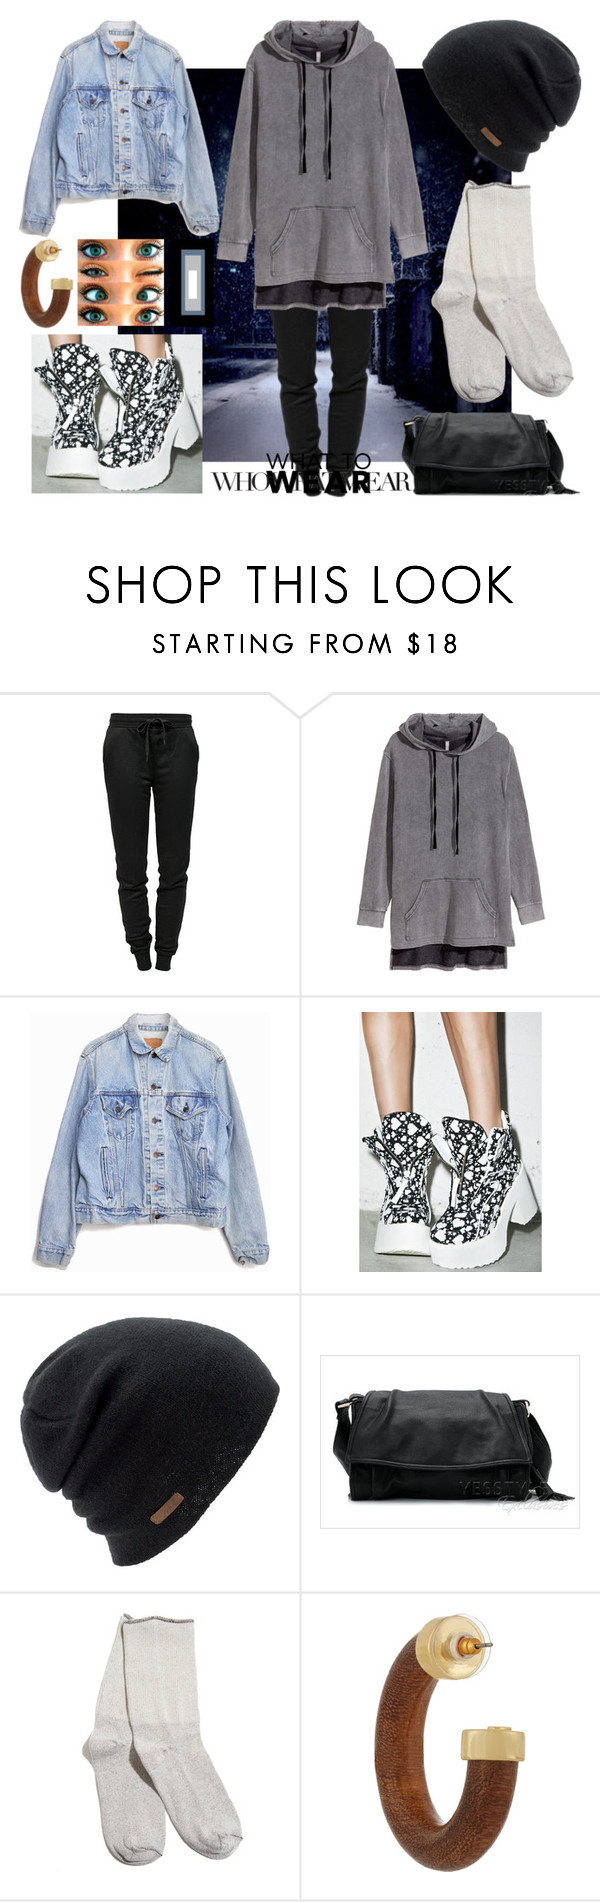 """""""Who?"""" by droffashion ❤ liked on Polyvore featuring T By Alexander Wang, Levi's, Maria ke Fisherman, Coal, 59th Street, Kenneth Jay Lane and WhatToWear"""